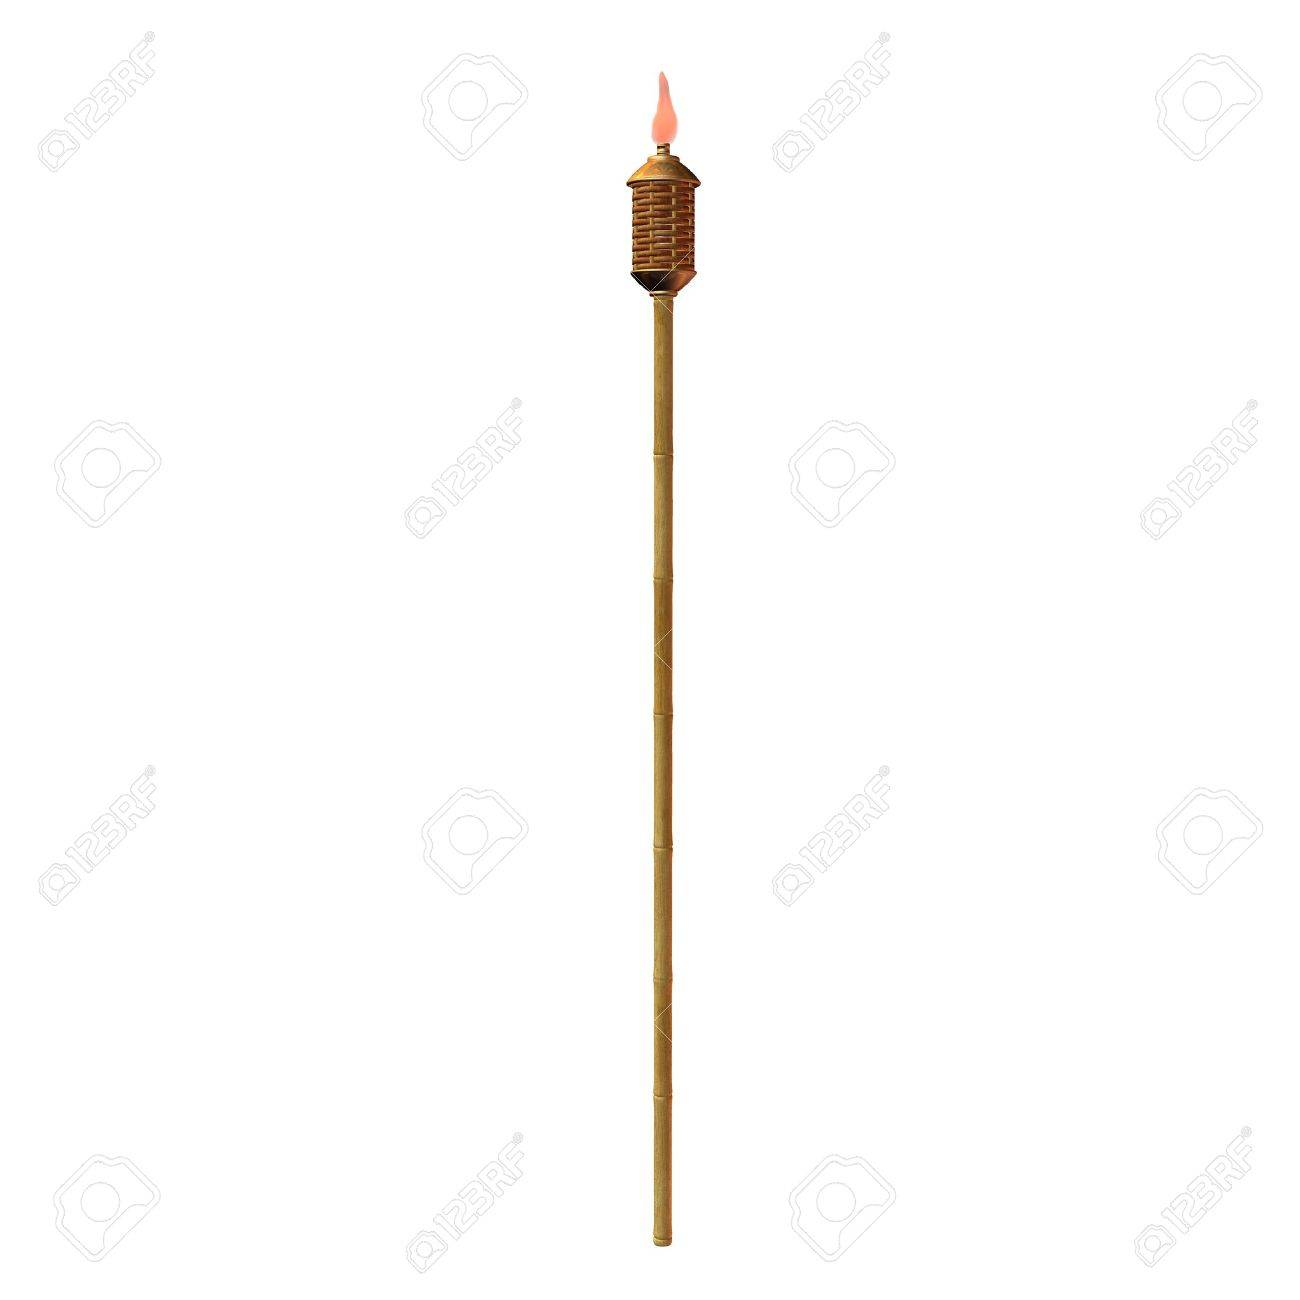 Tiki Torch Illustration On A White Background Stock Photo Picture 1300x1300